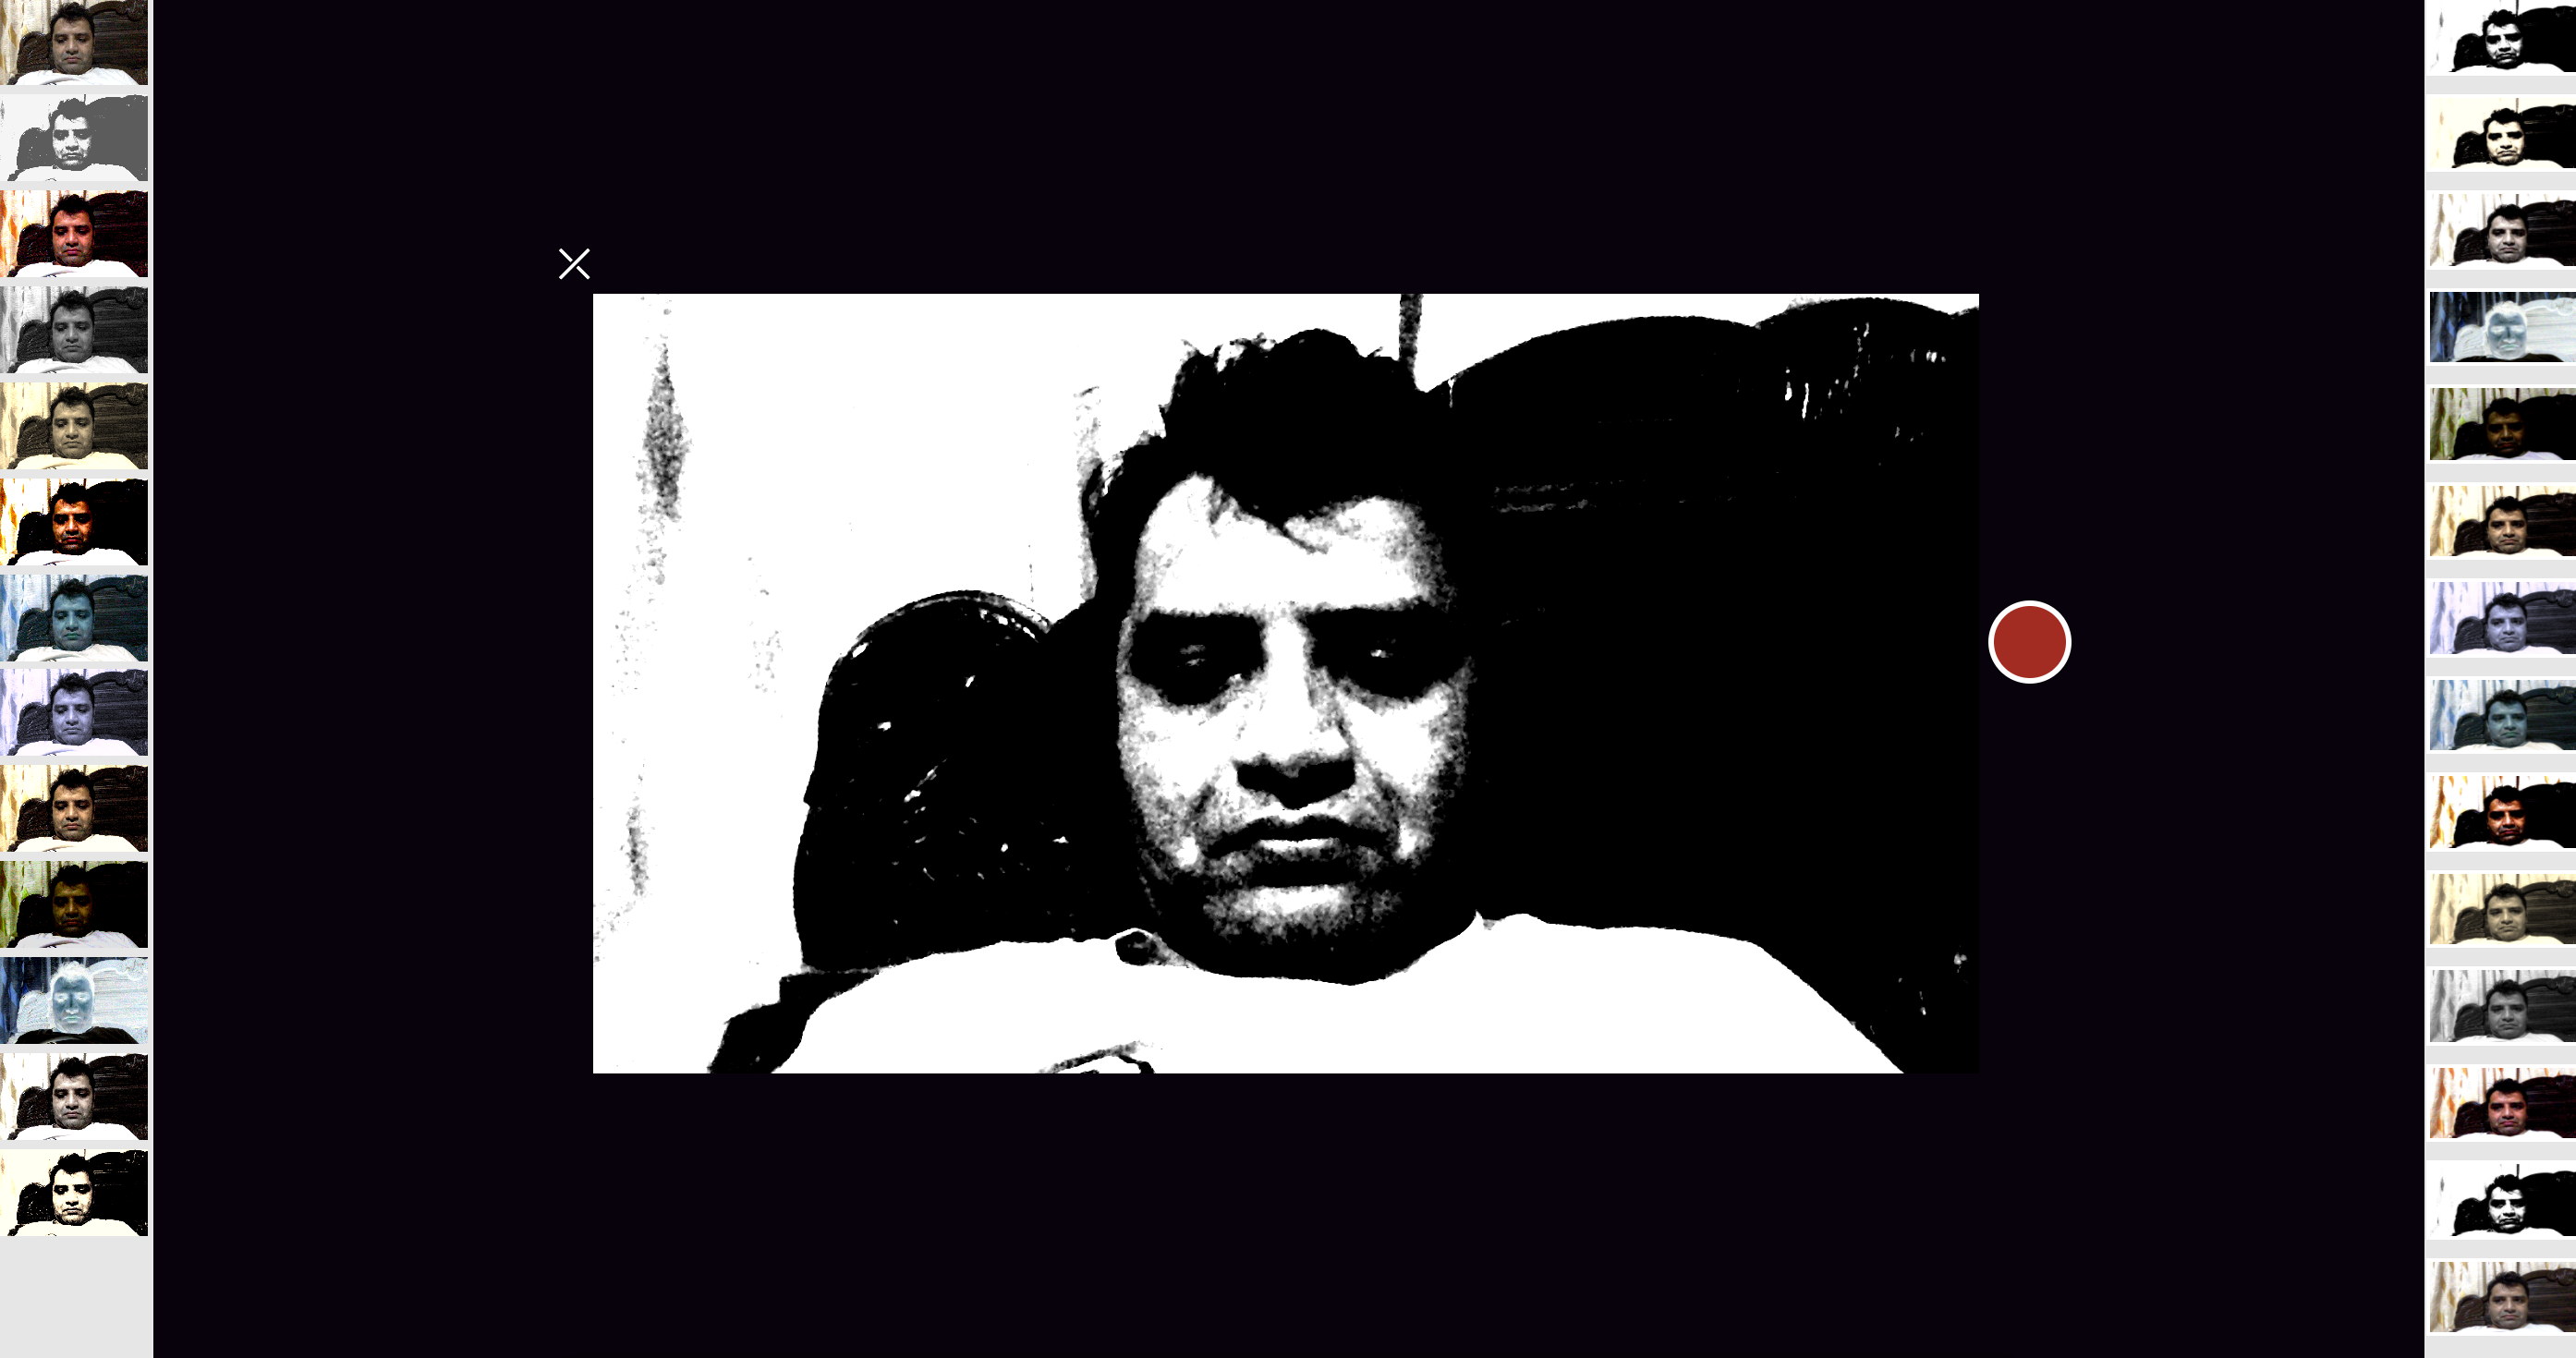 Camera view with effects applied